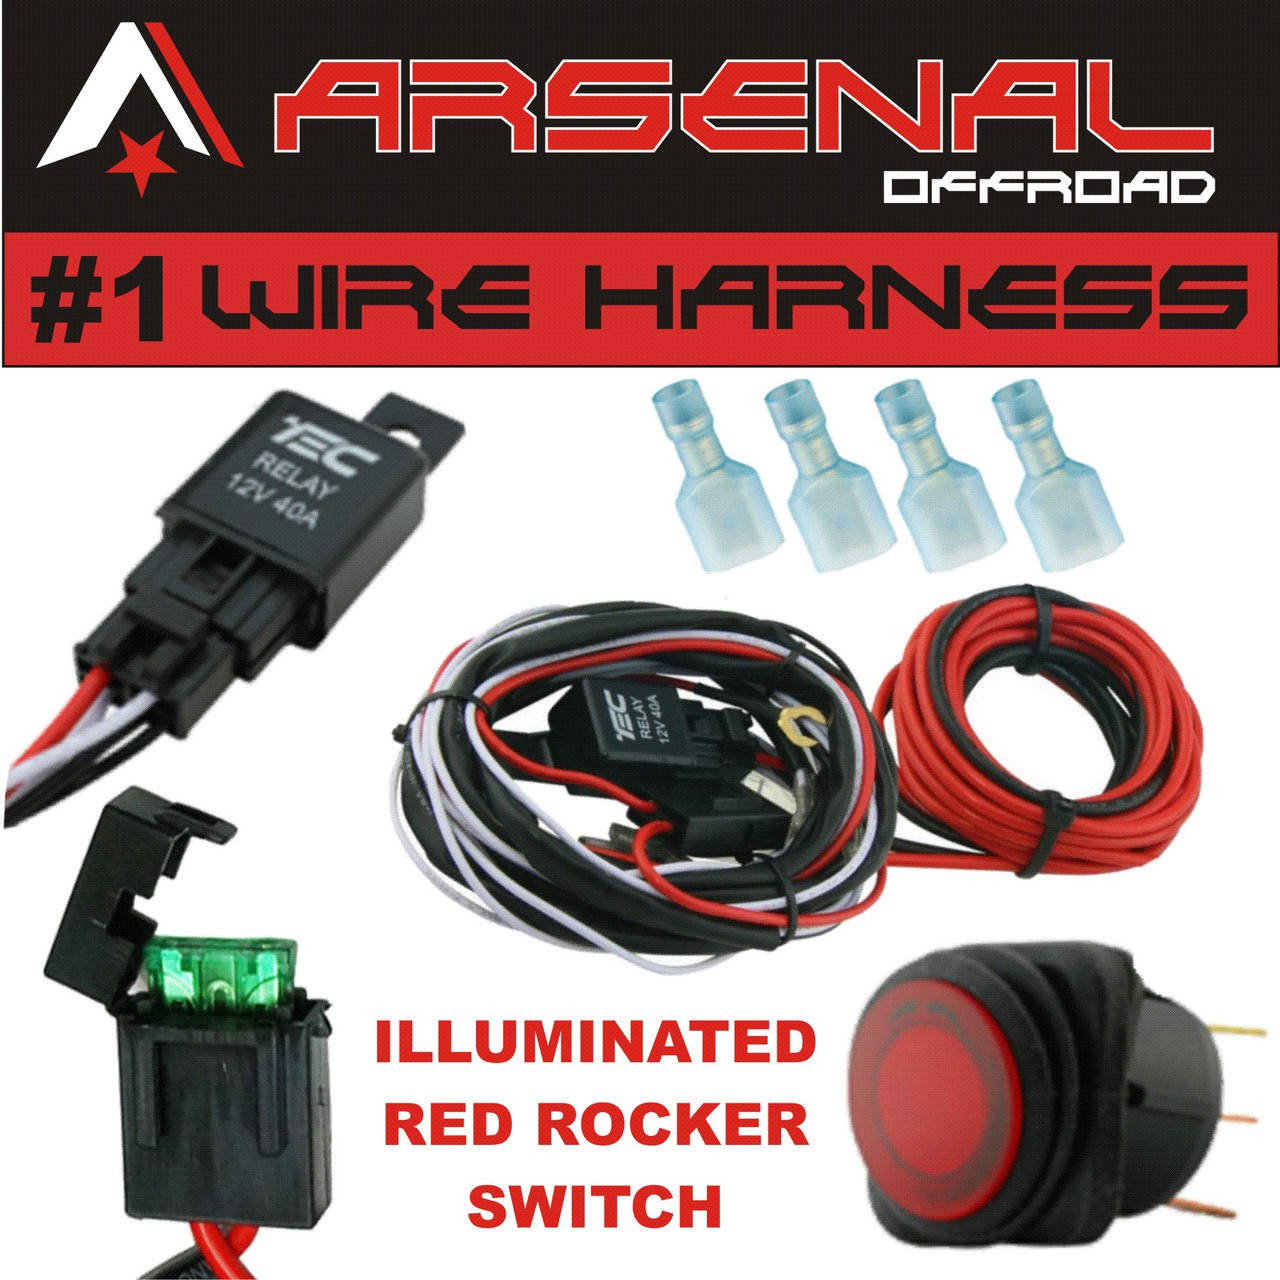 1 40 Amp Universal Wiring Harness Comes With Relay Illuminated Auto Wire Wrap On Off Rocker Switch For Offroad Led Light Bars And Work Lights Jeep Atv Utv Truck